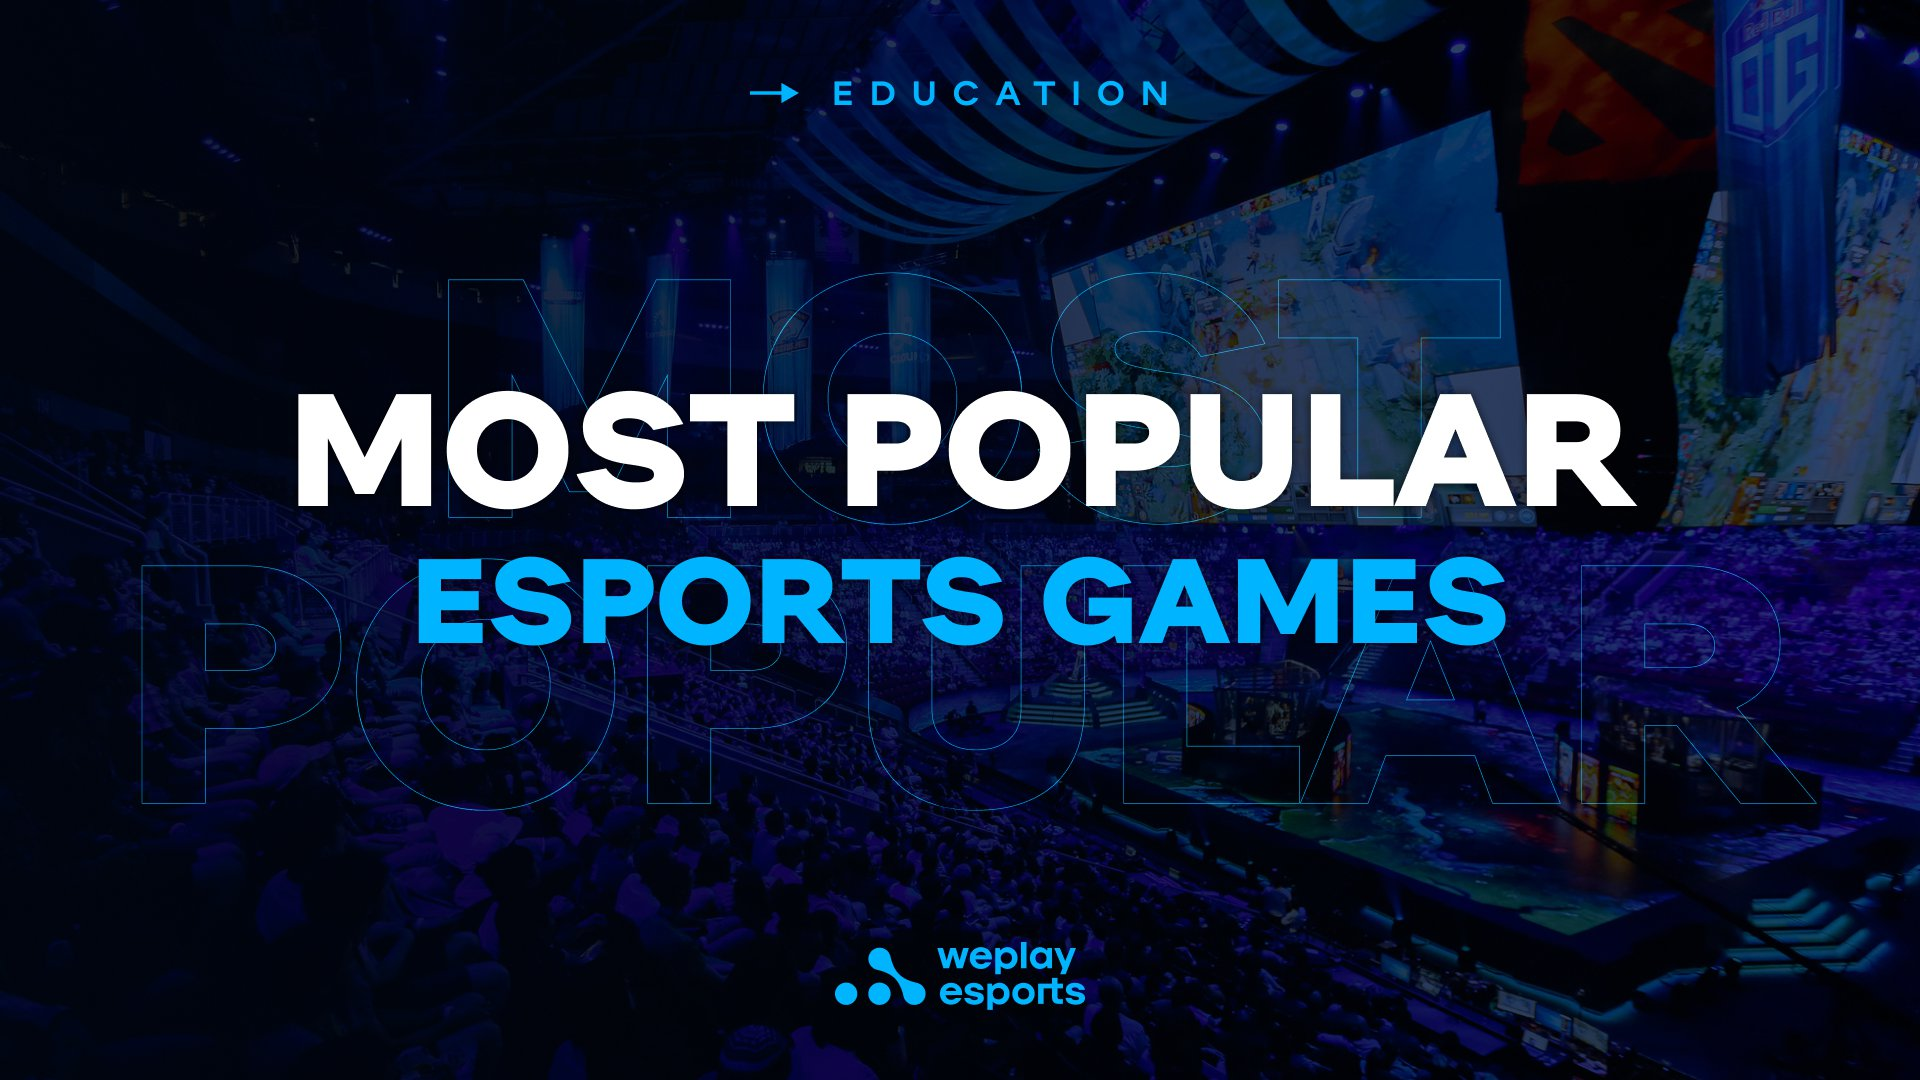 Most popular esports games. Image: WePlay Holding